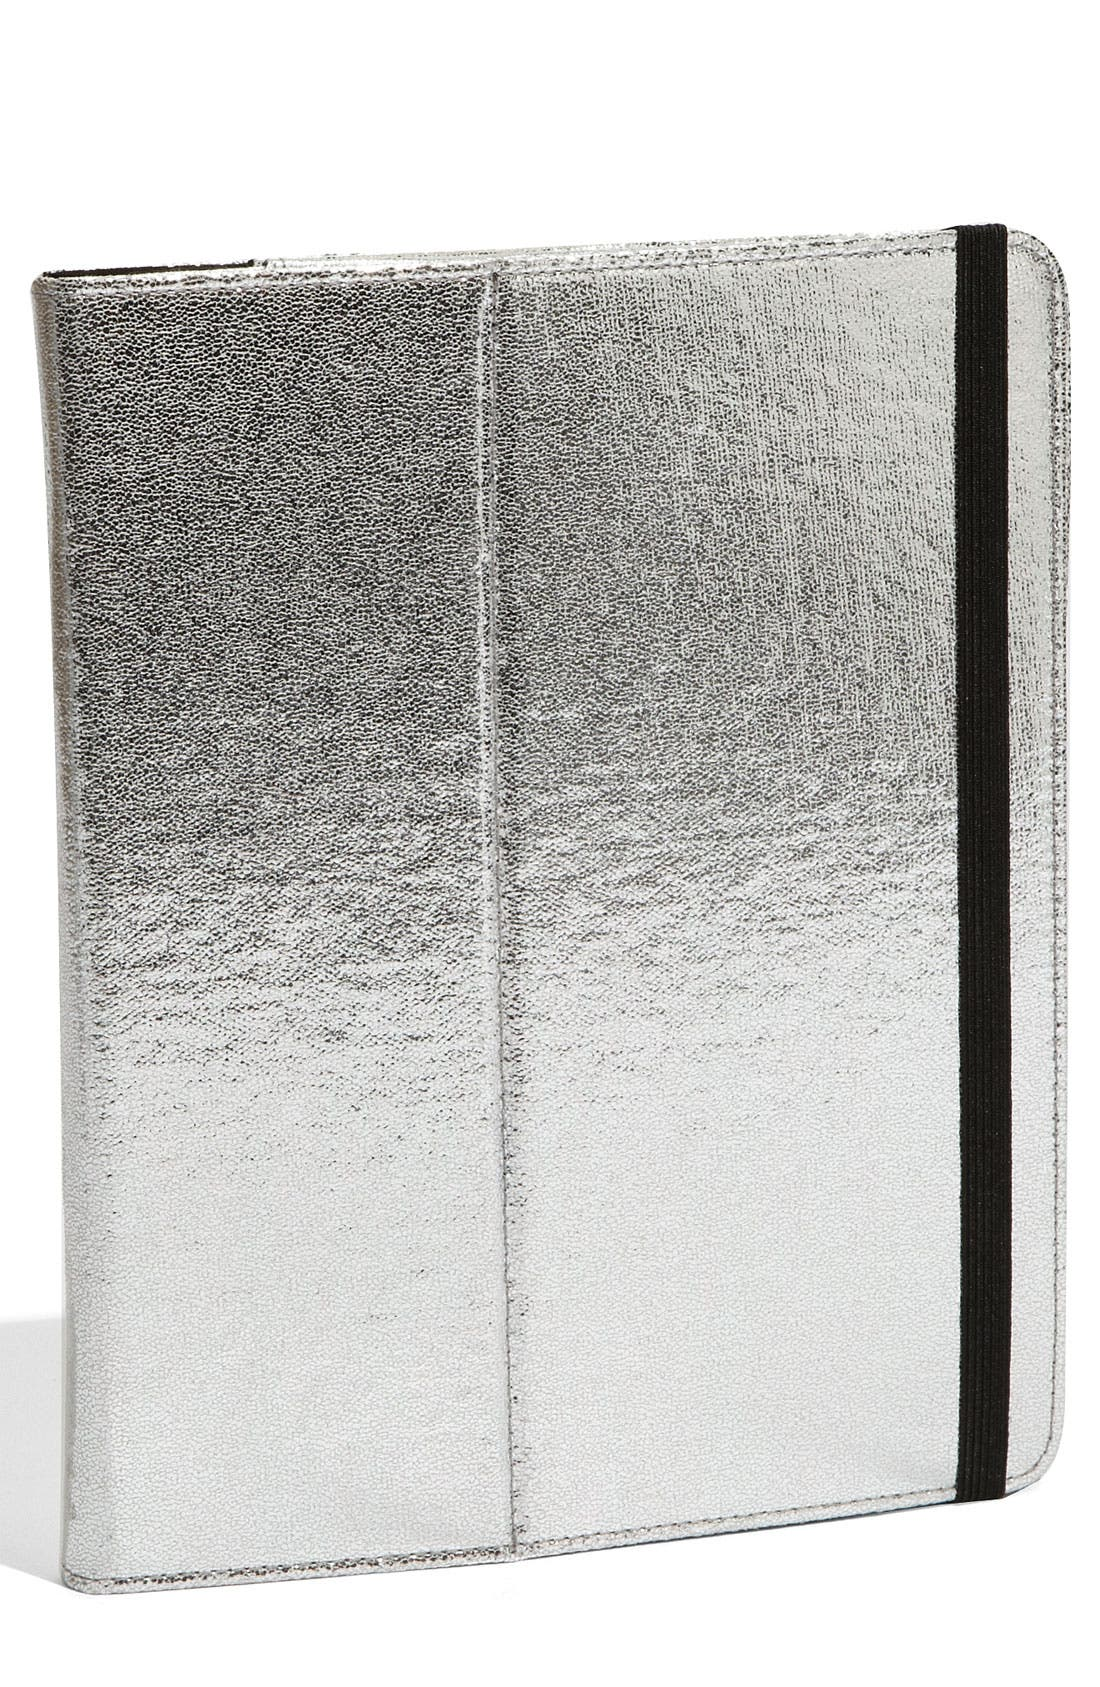 Alternate Image 1 Selected - Nordstrom 'Crackle' Metallic iPad Case